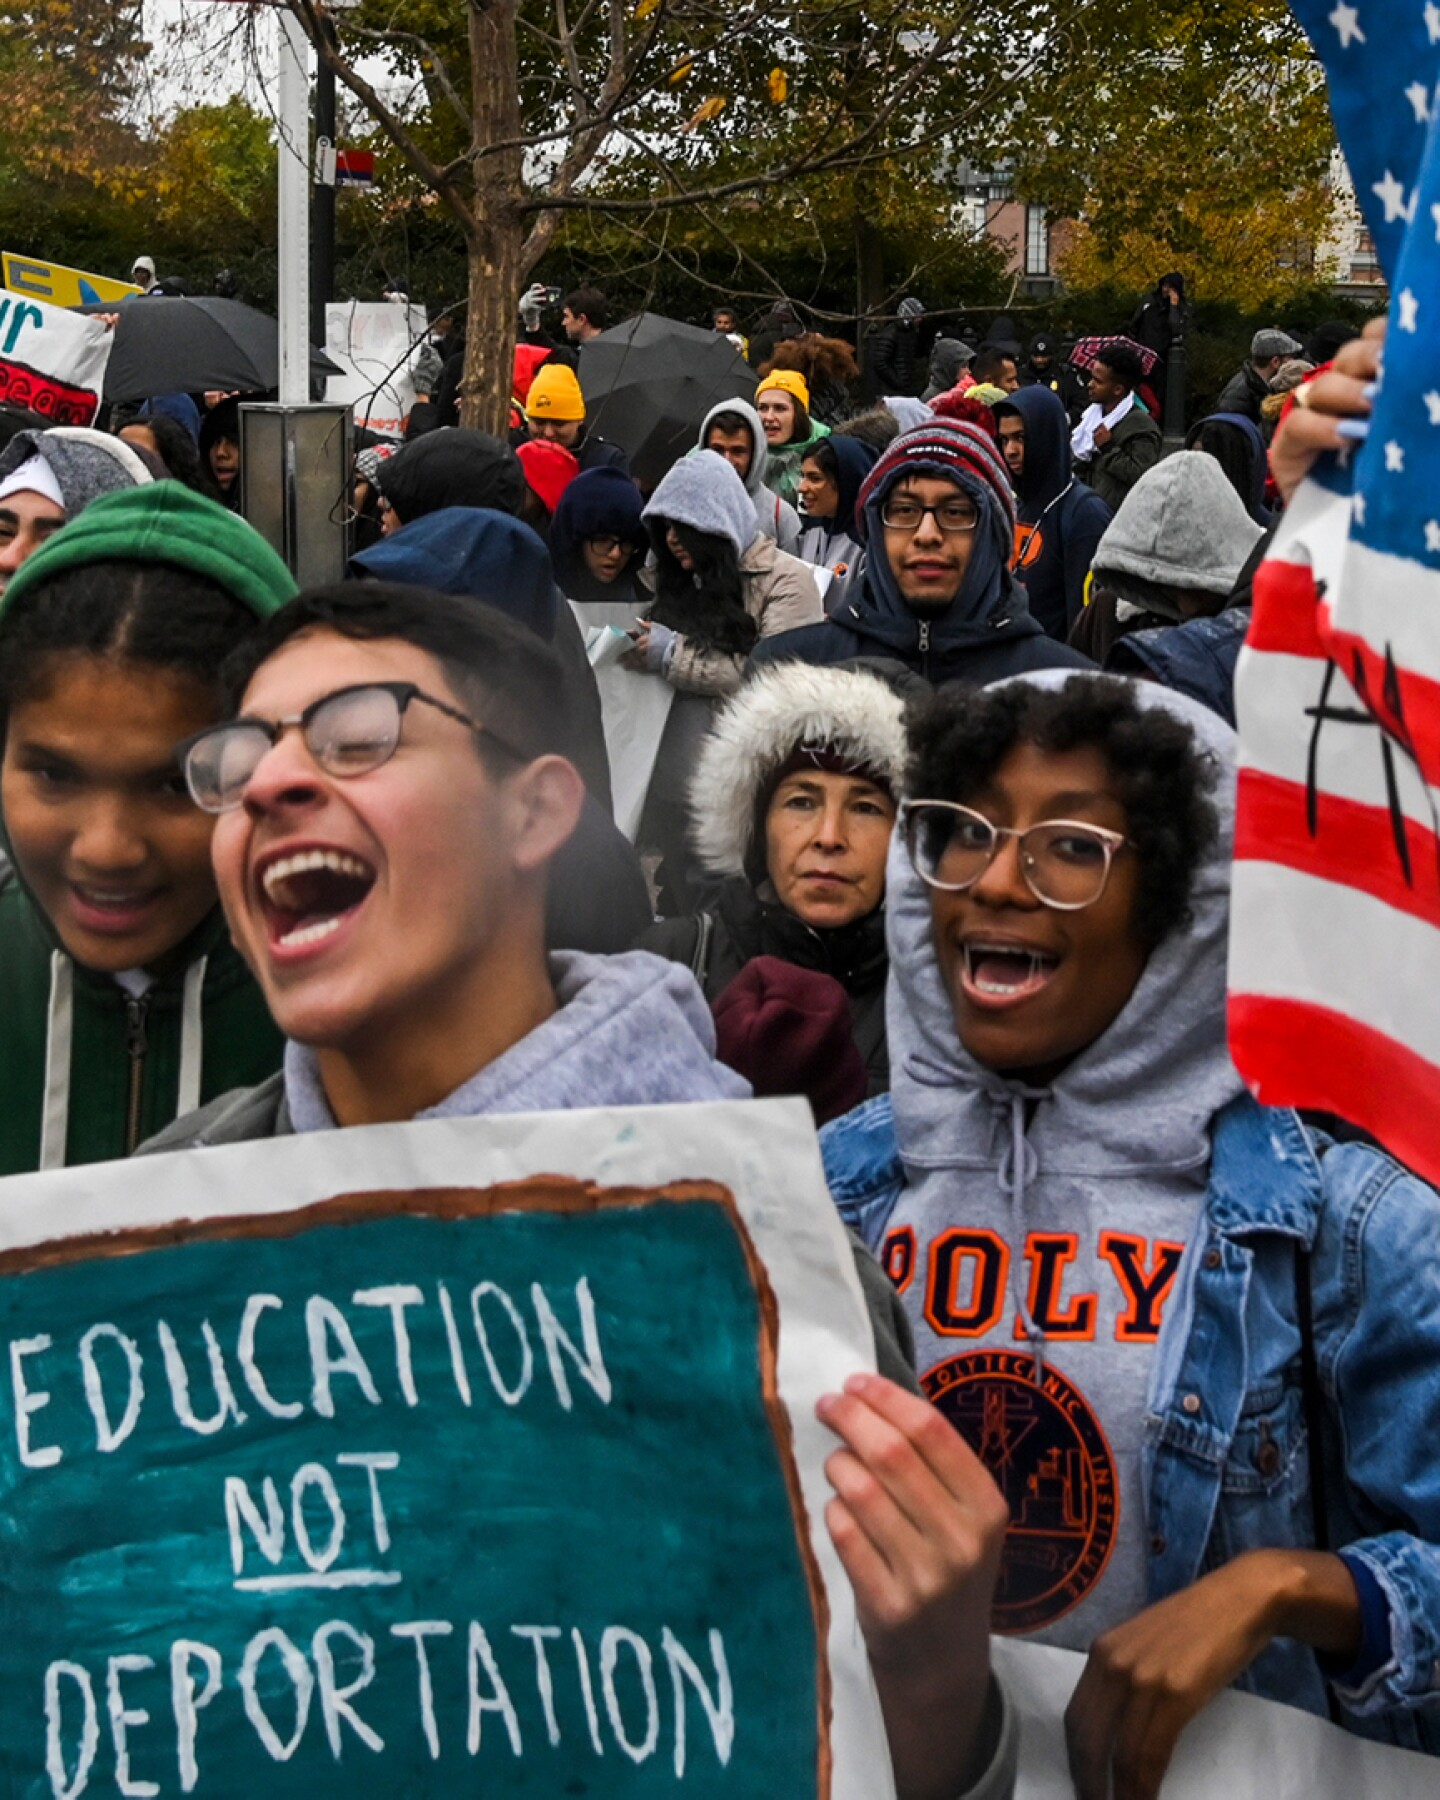 Demonstrators gather in front of the United States Supreme Court, where the Court is hearing arguments on Deferred Action for Childhood Arrivals - DACA. | Jahi Chikwendiu/The Washington Post via Getty Images